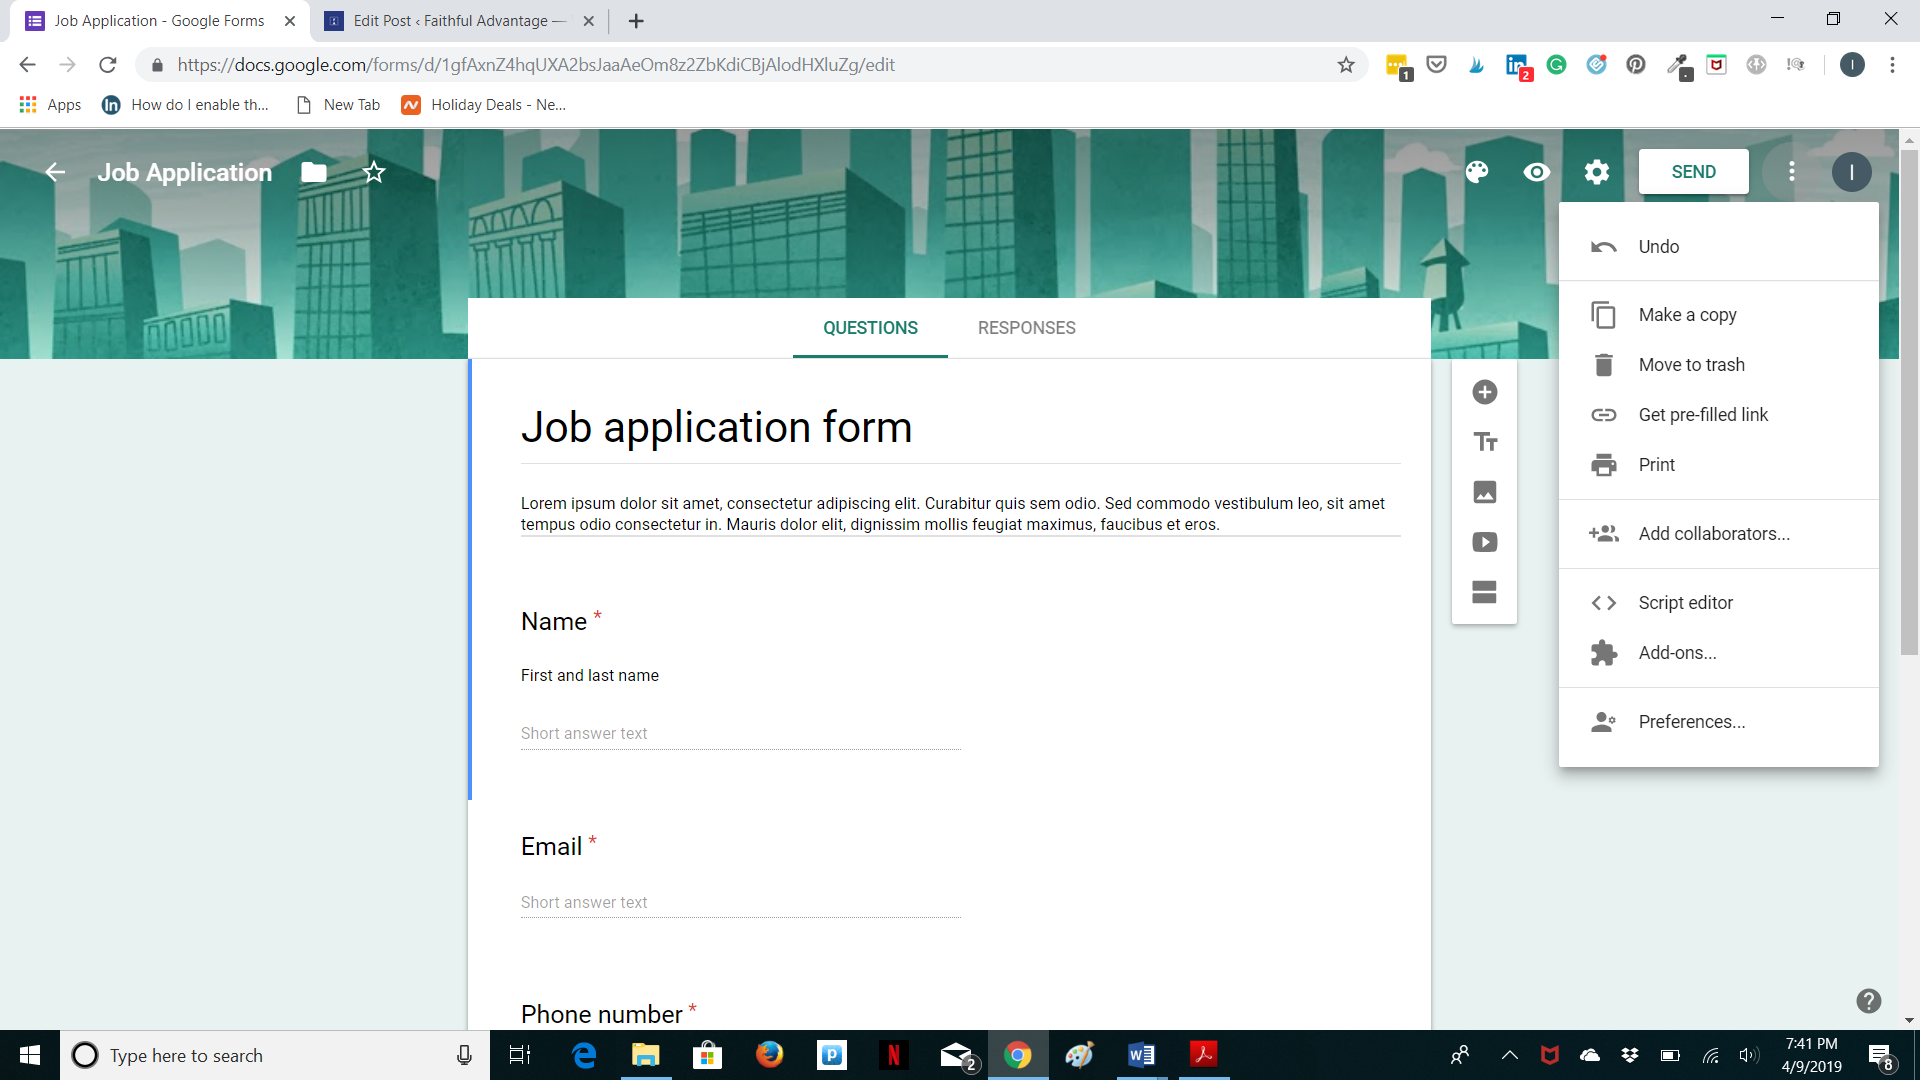 Google forms - share options